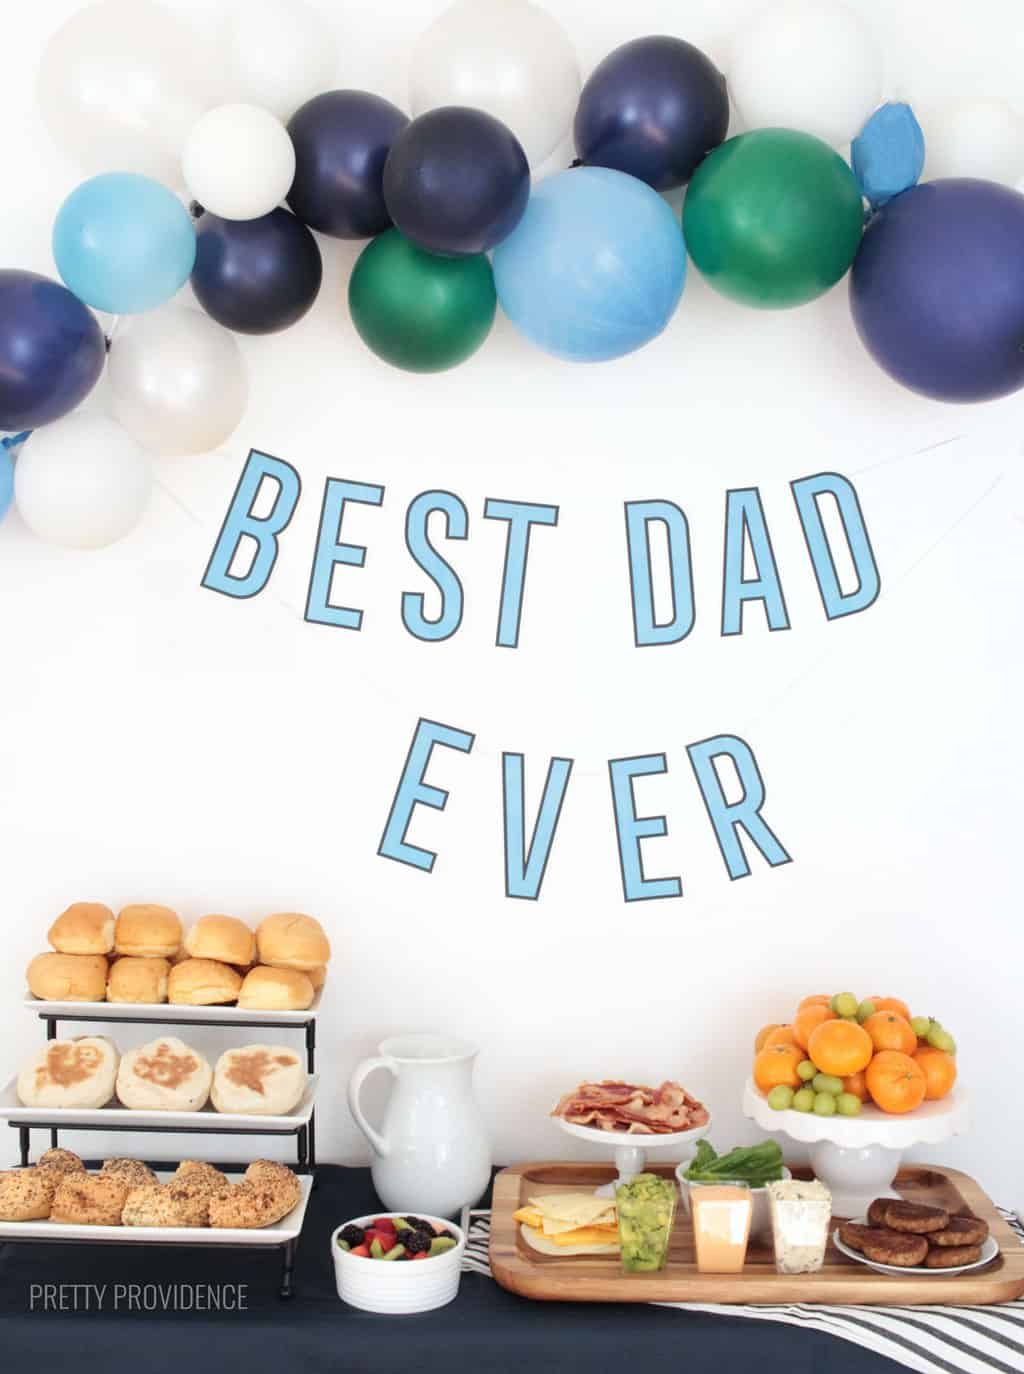 Father's Day breakfast table with breakfast sandwich ingredients, balloons and free printable 'best dad ever' banner.